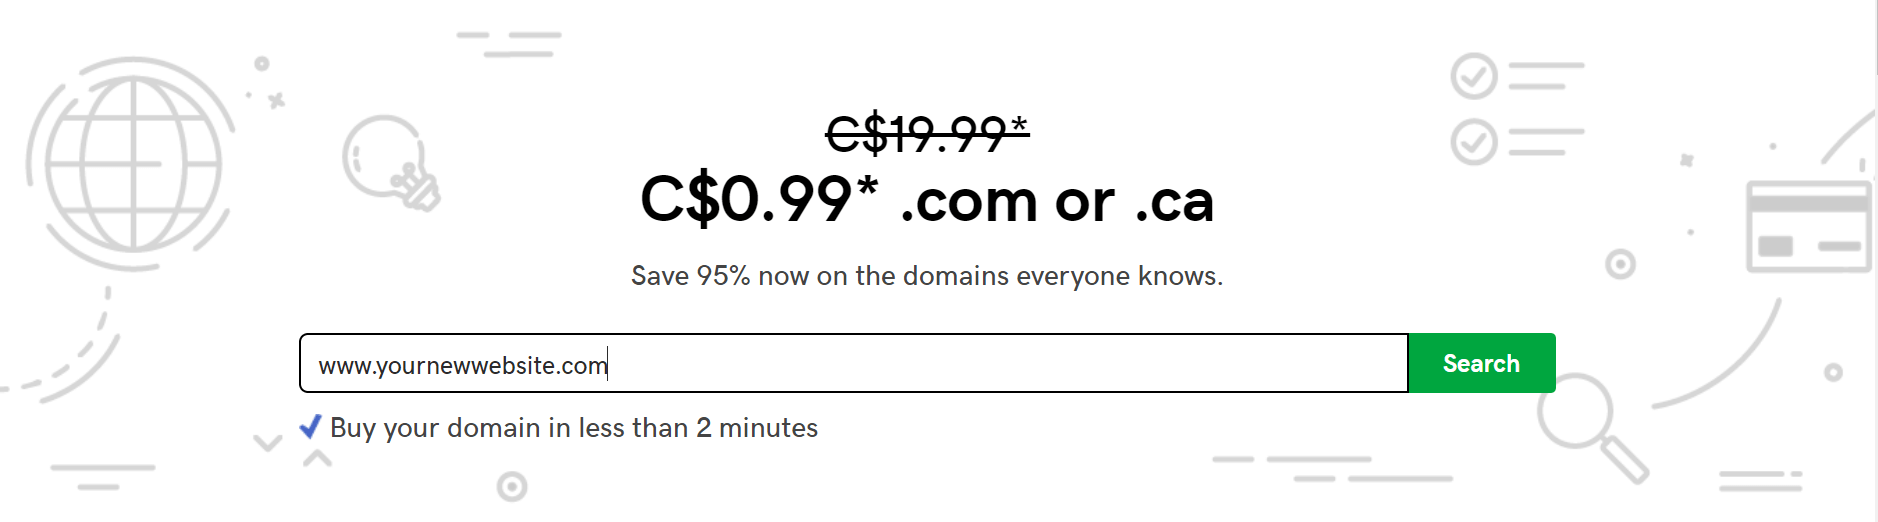 domain name buying - monetizepros